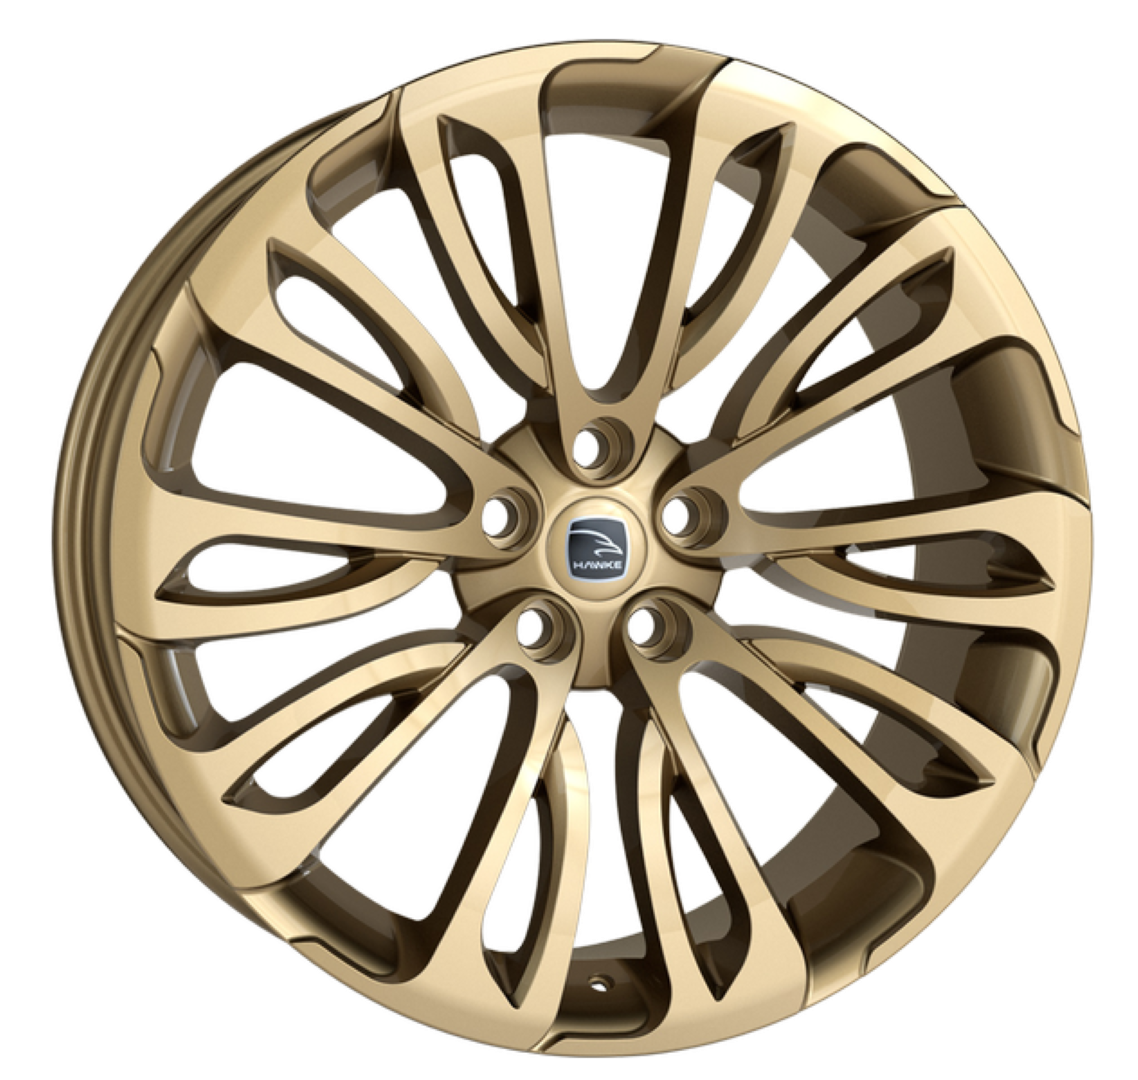 HAWKE Halcyon Alloy Wheels 23 inch 5x120 (ET38) | Light Gold x 4 | fits Range Rover Sport, Vogue and Discovery models